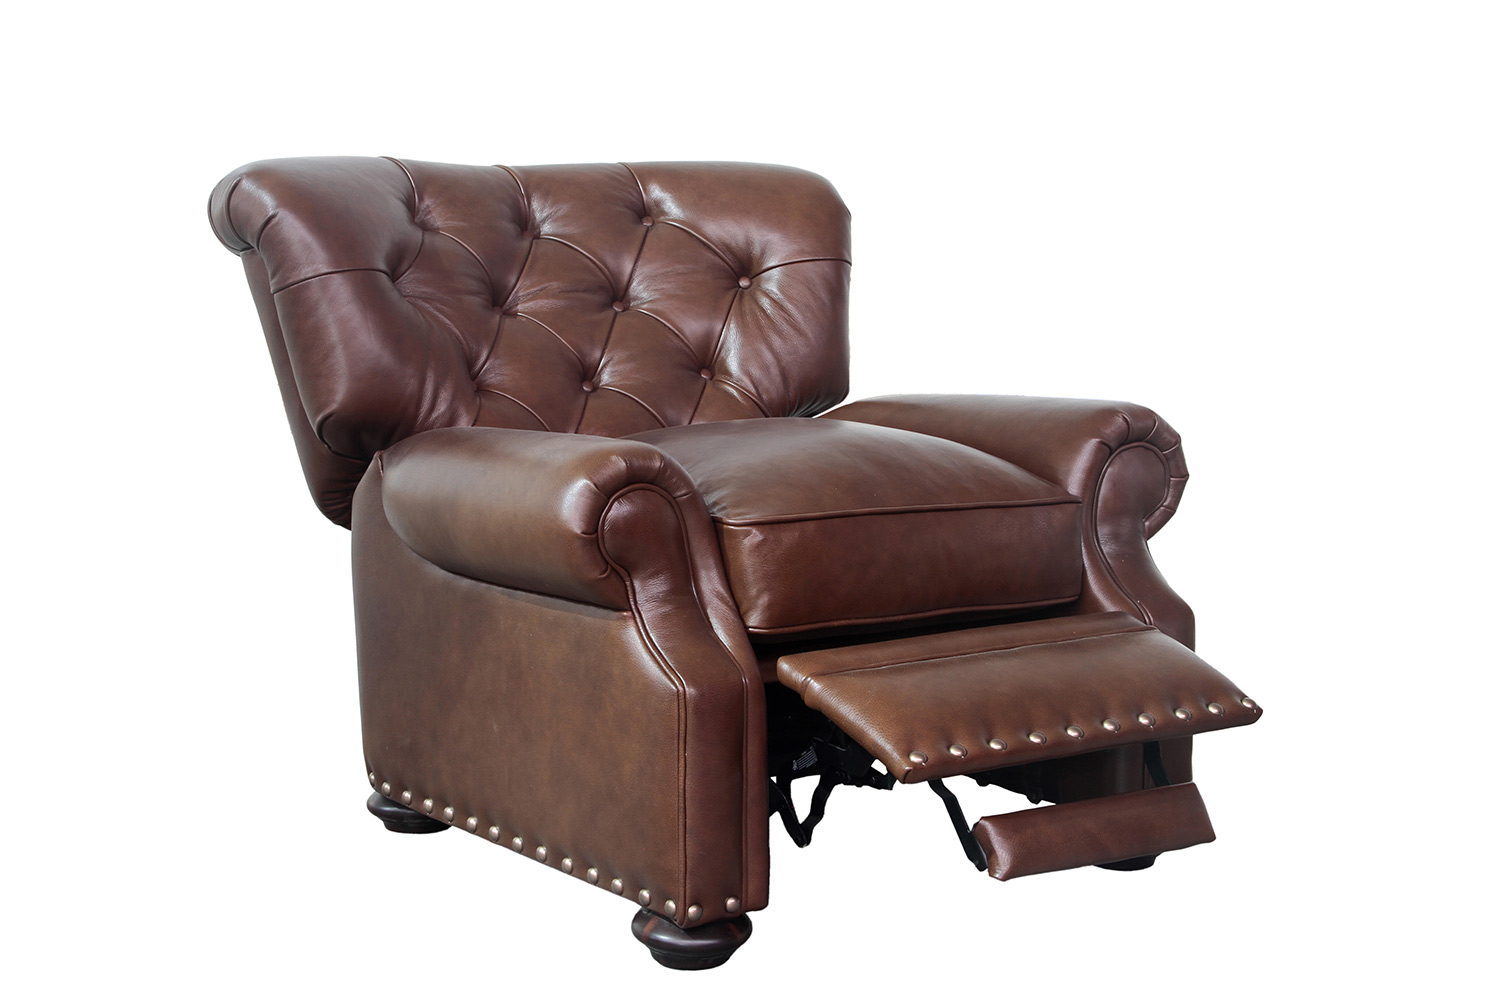 Barcalounger Sinclair Recliner Chair - Shoreham Chocolate/All Leather